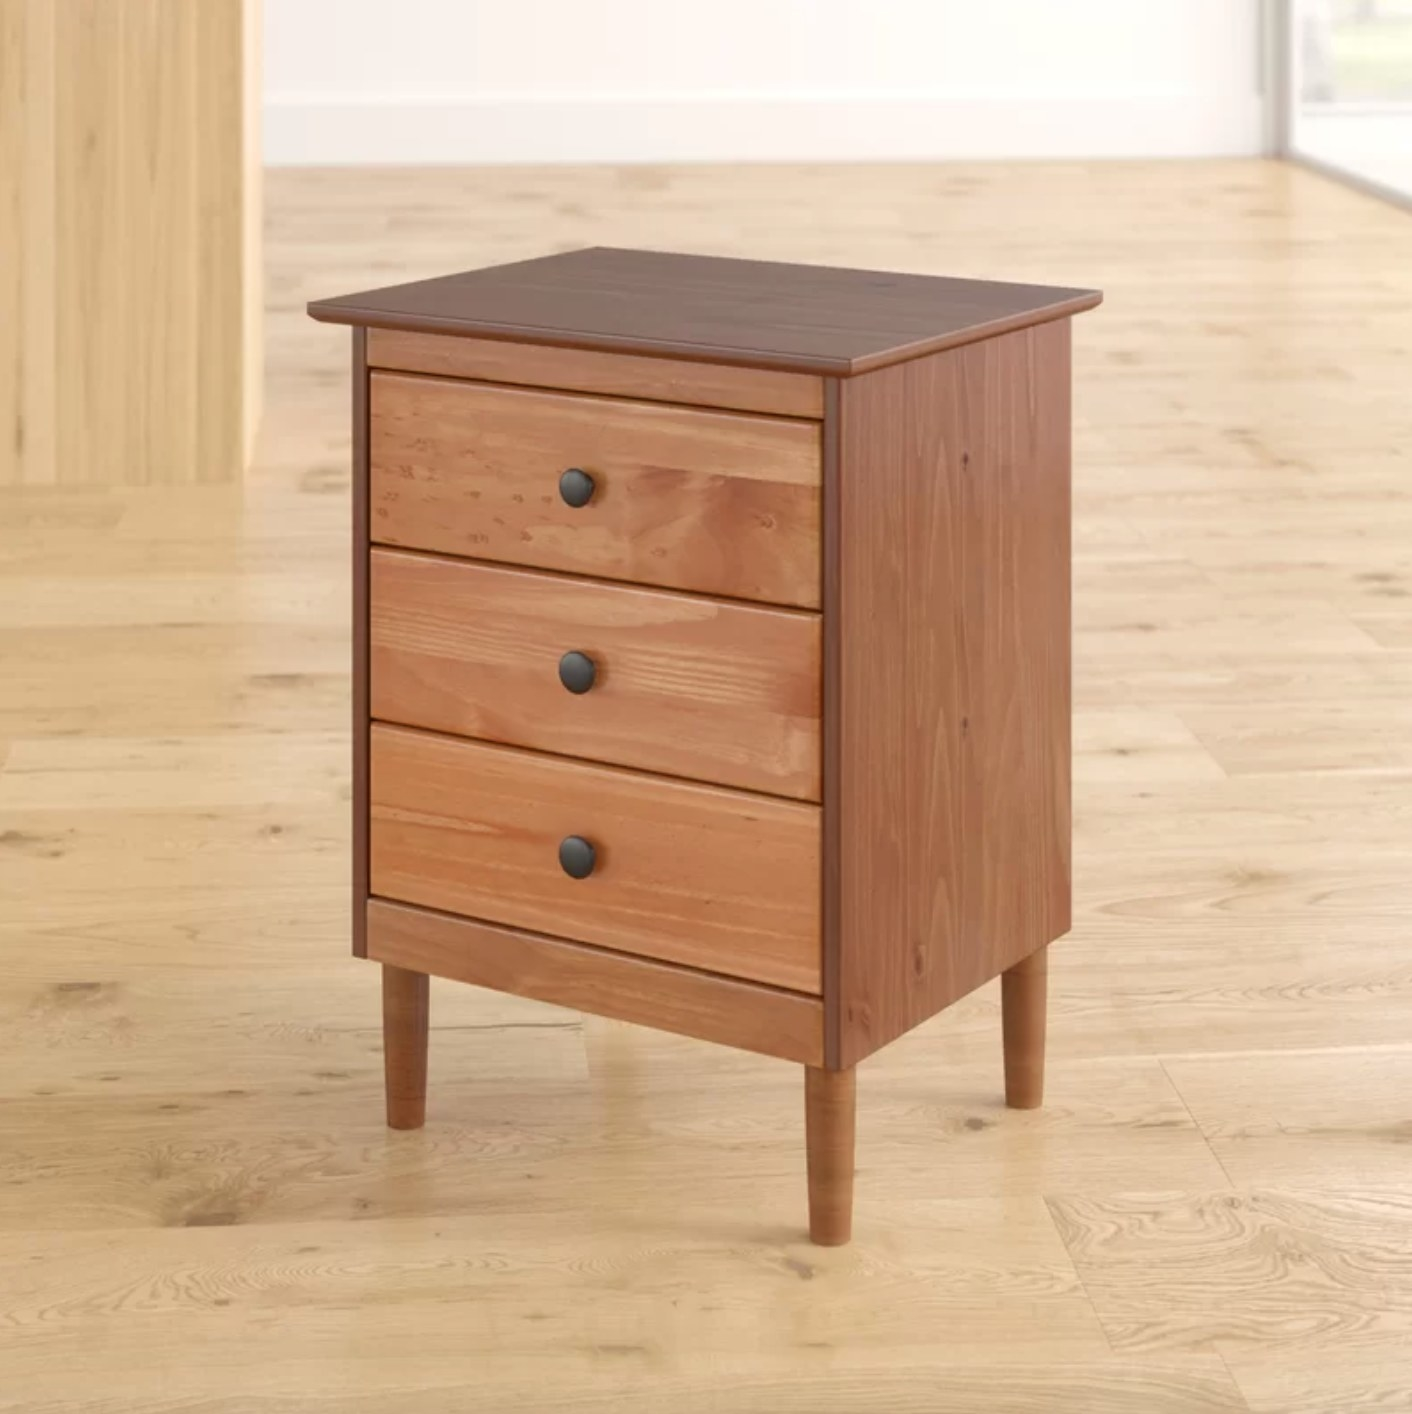 The three drawer nightstand in caramel